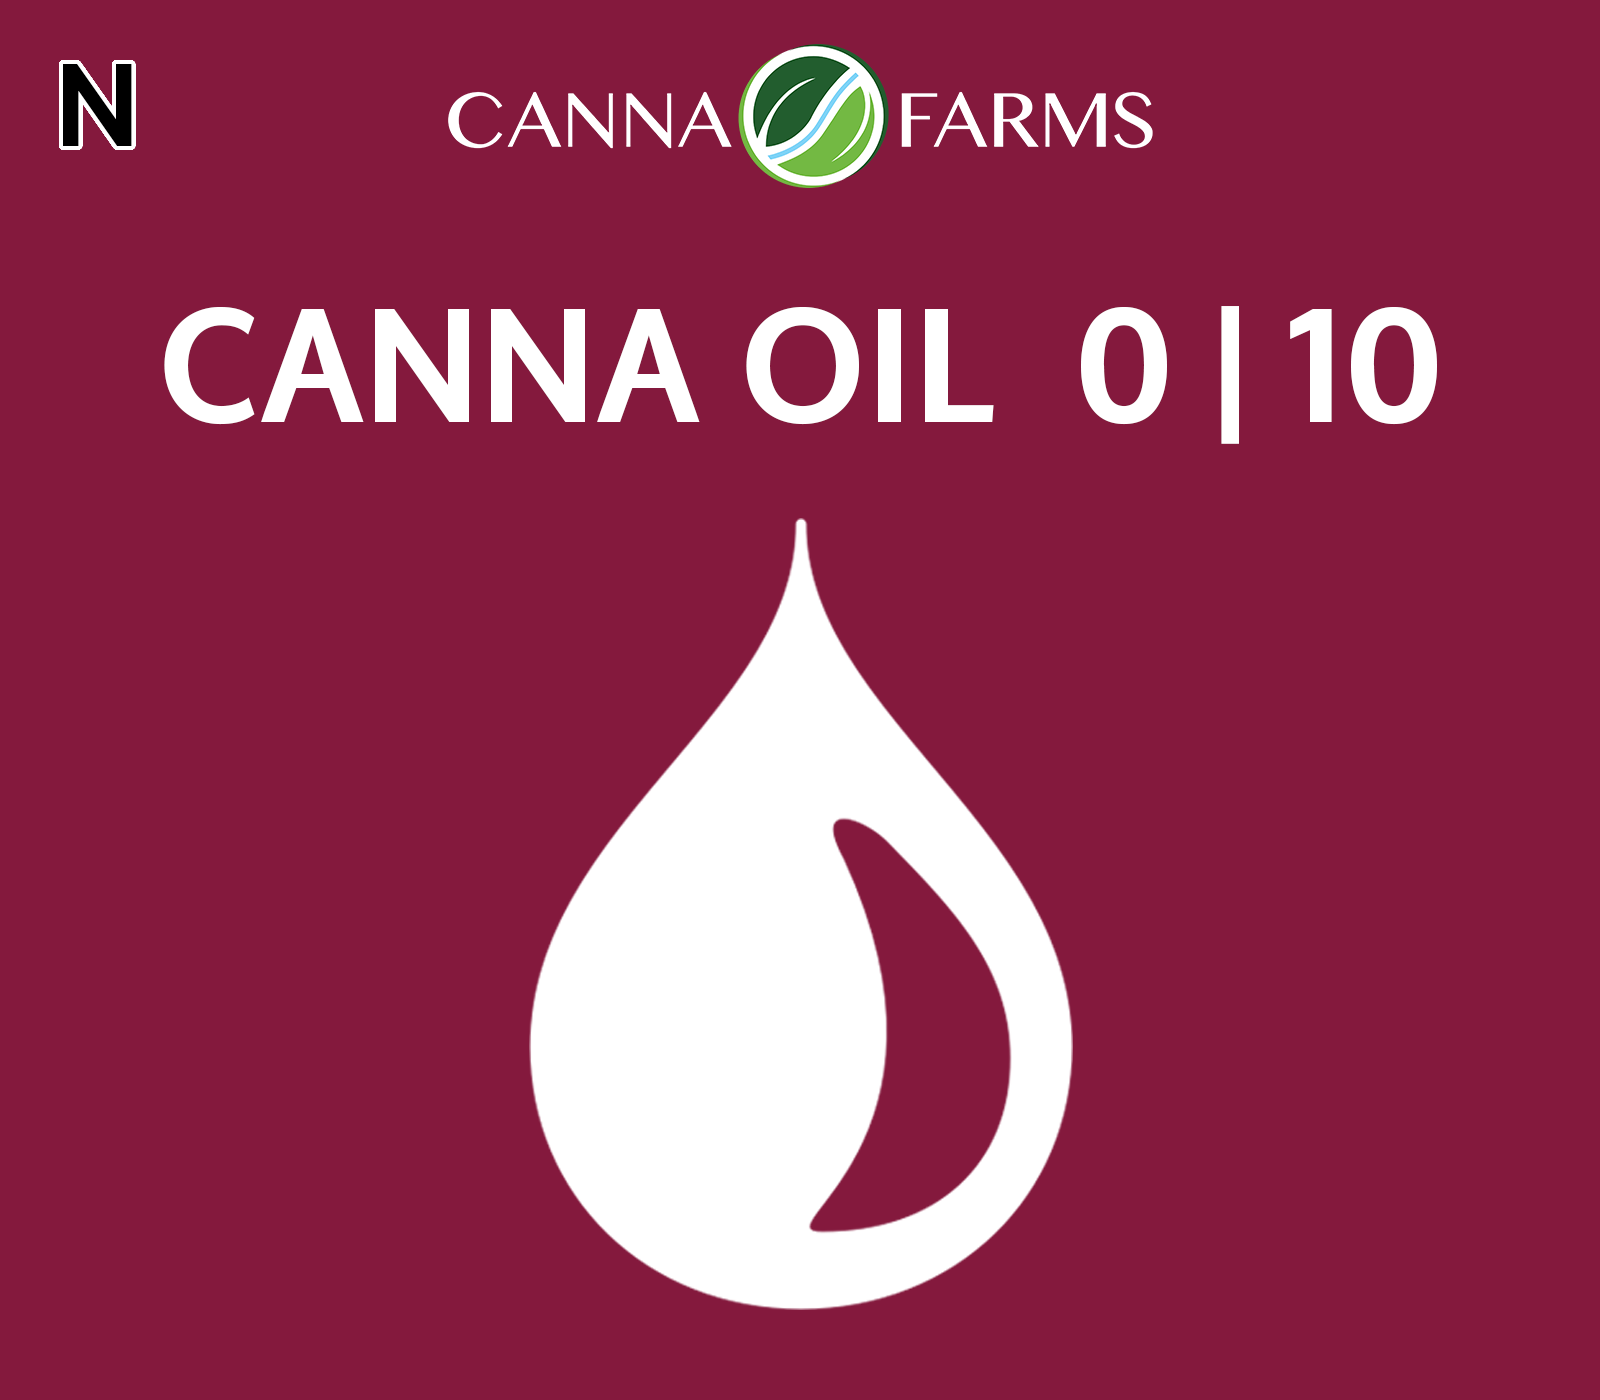 CANNA OIL 0 | 10 25 mL = $25